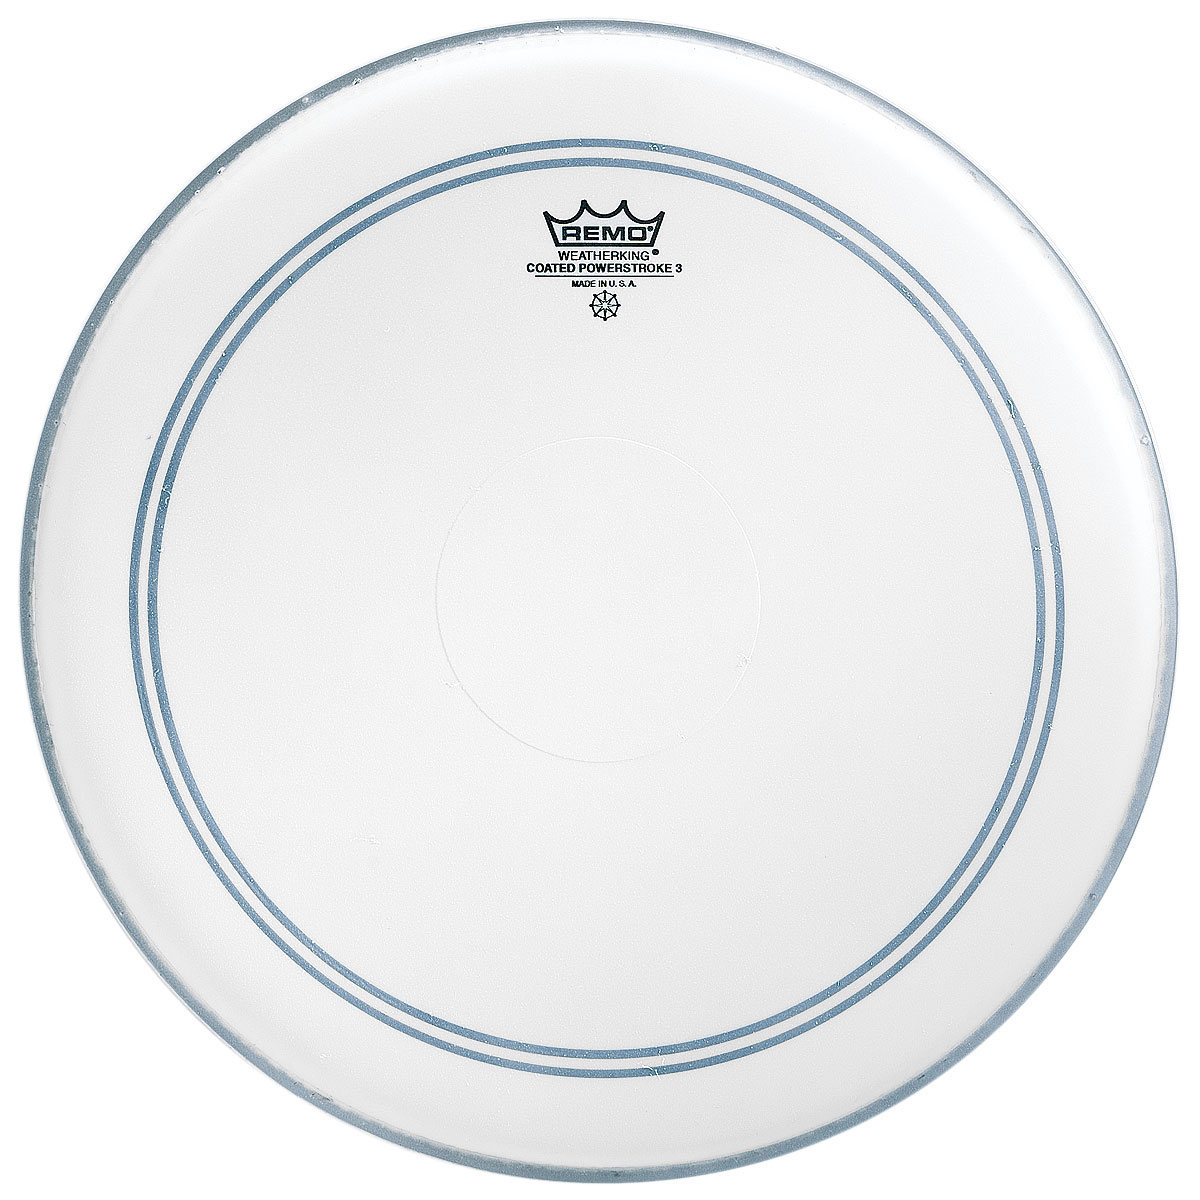 "Remo 13"" Powerstroke P3 Clear Drum Head"